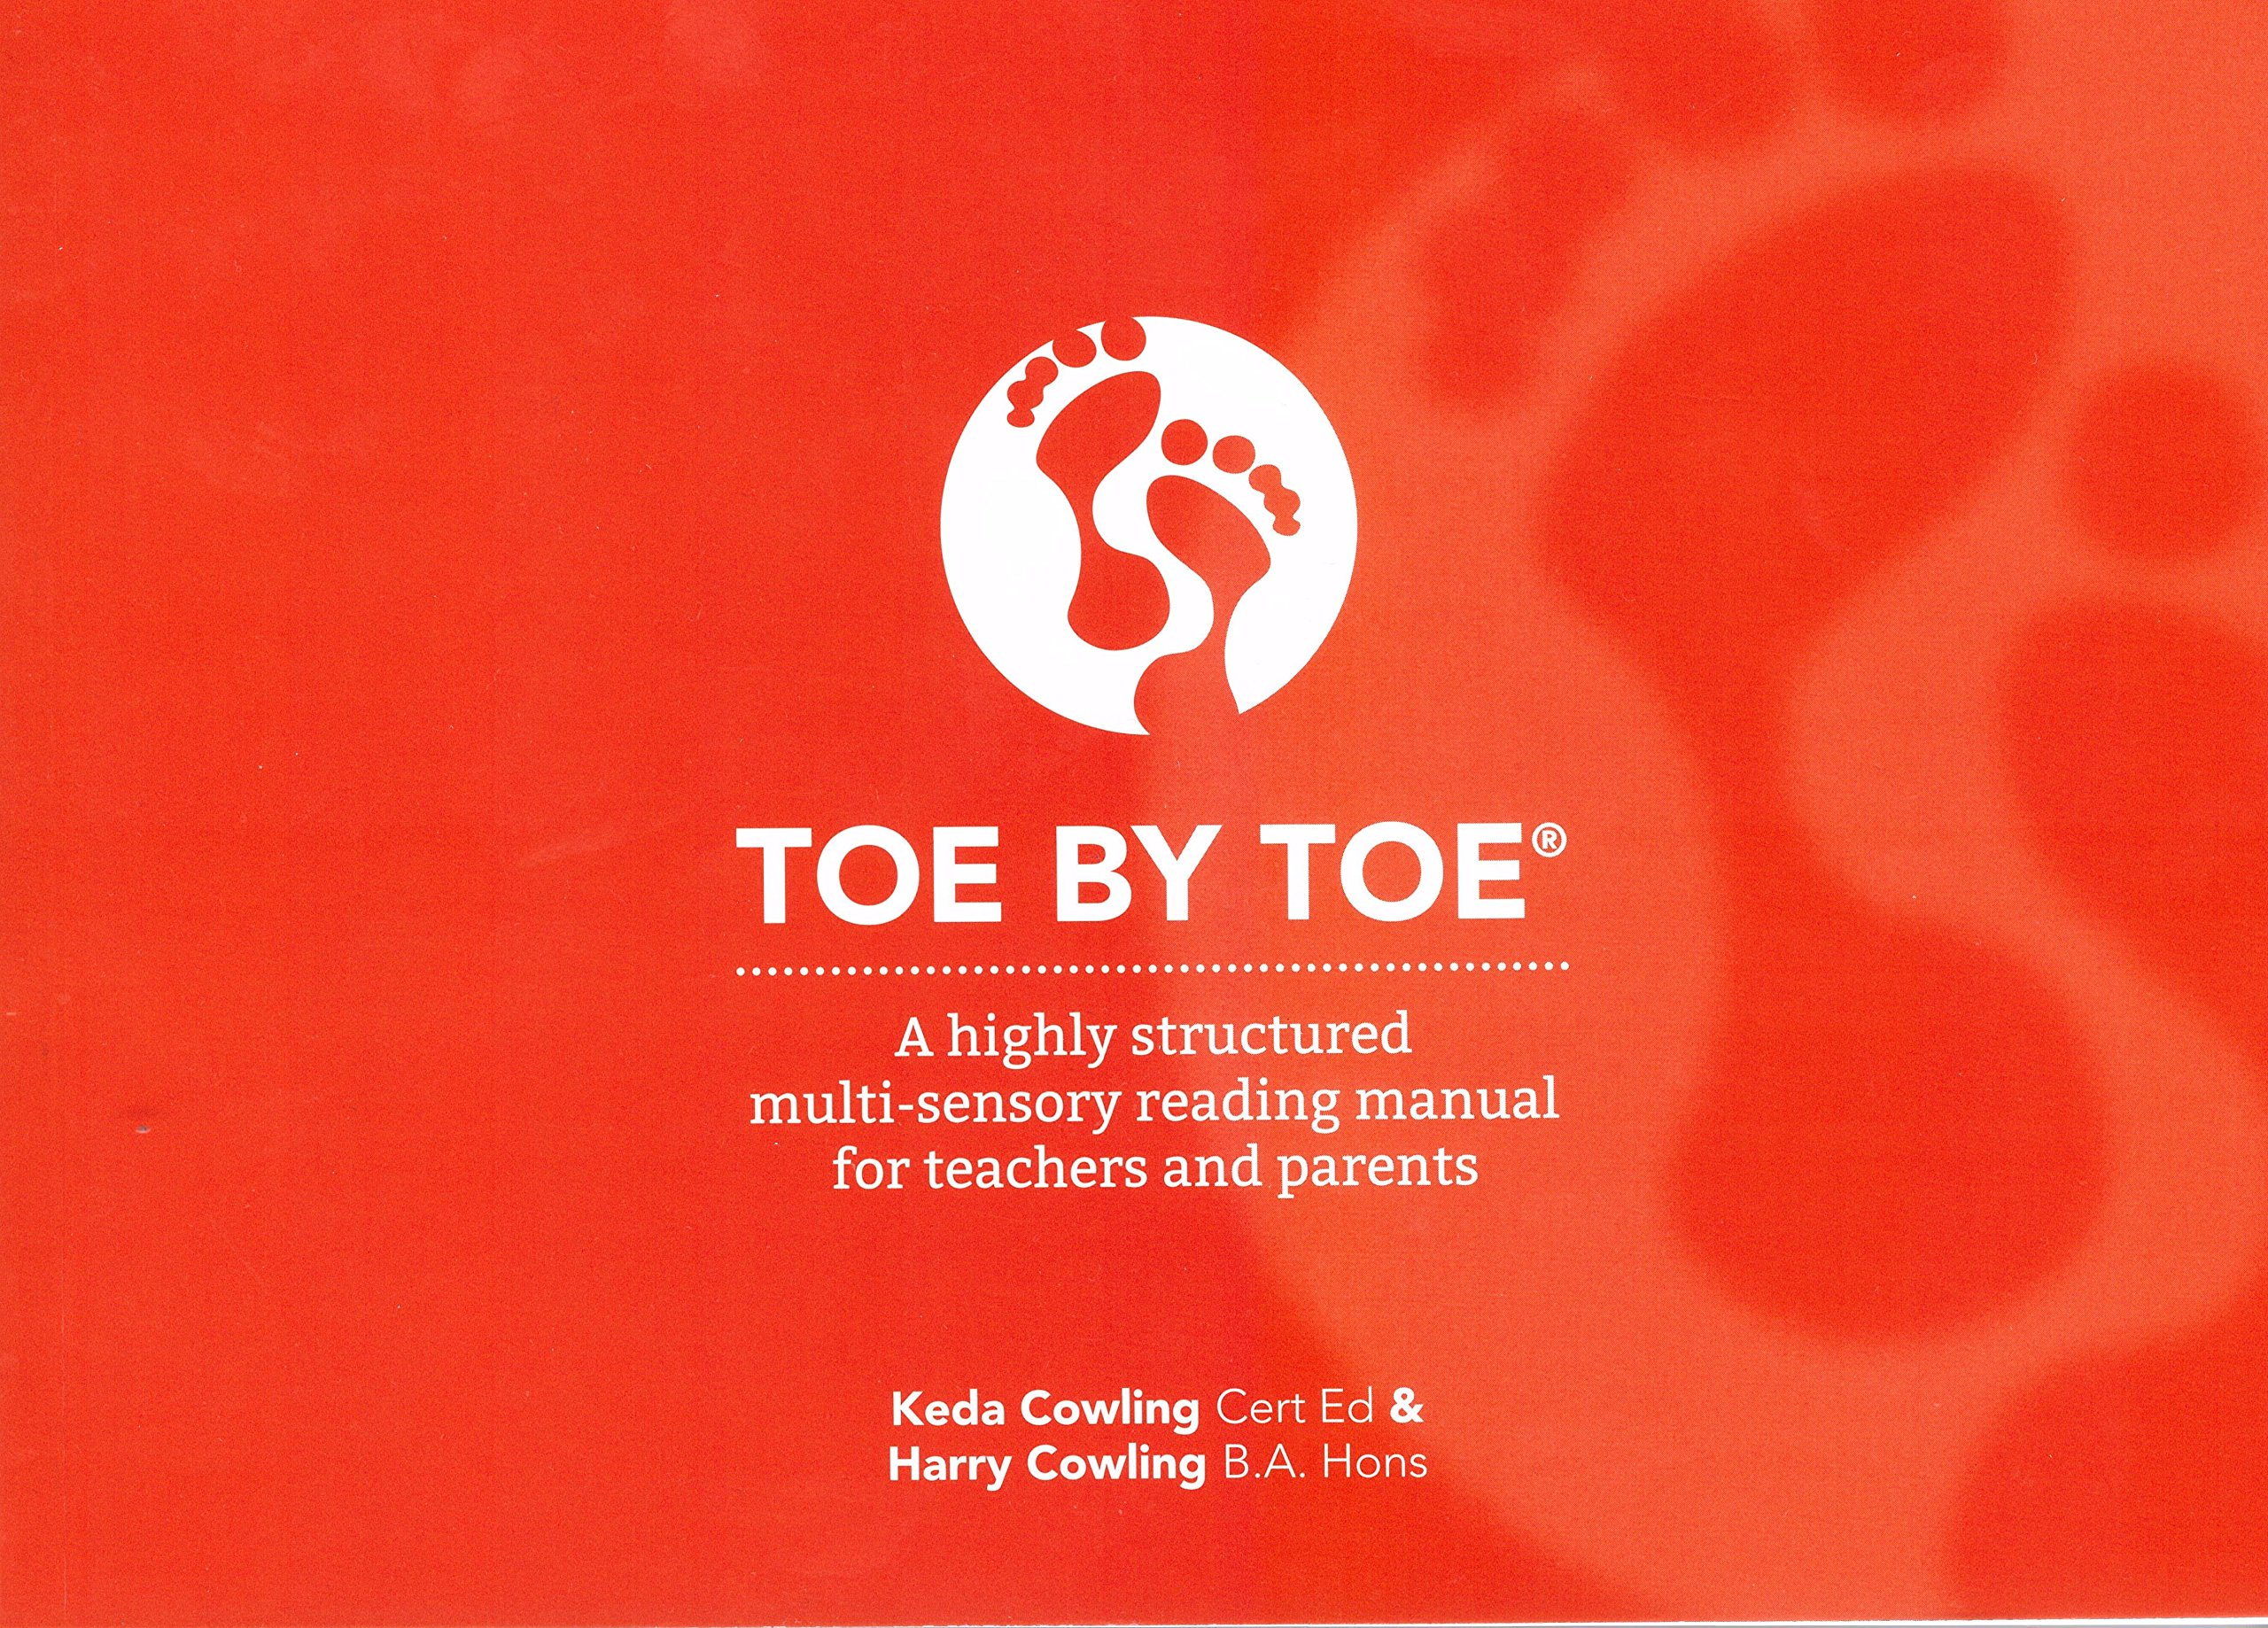 toe by toe a highly structured multi sensory reading manual for toe by toe a highly structured multi sensory reading manual for teachers and parents amazon co uk keda cowling harry cowling 9780952256403 books